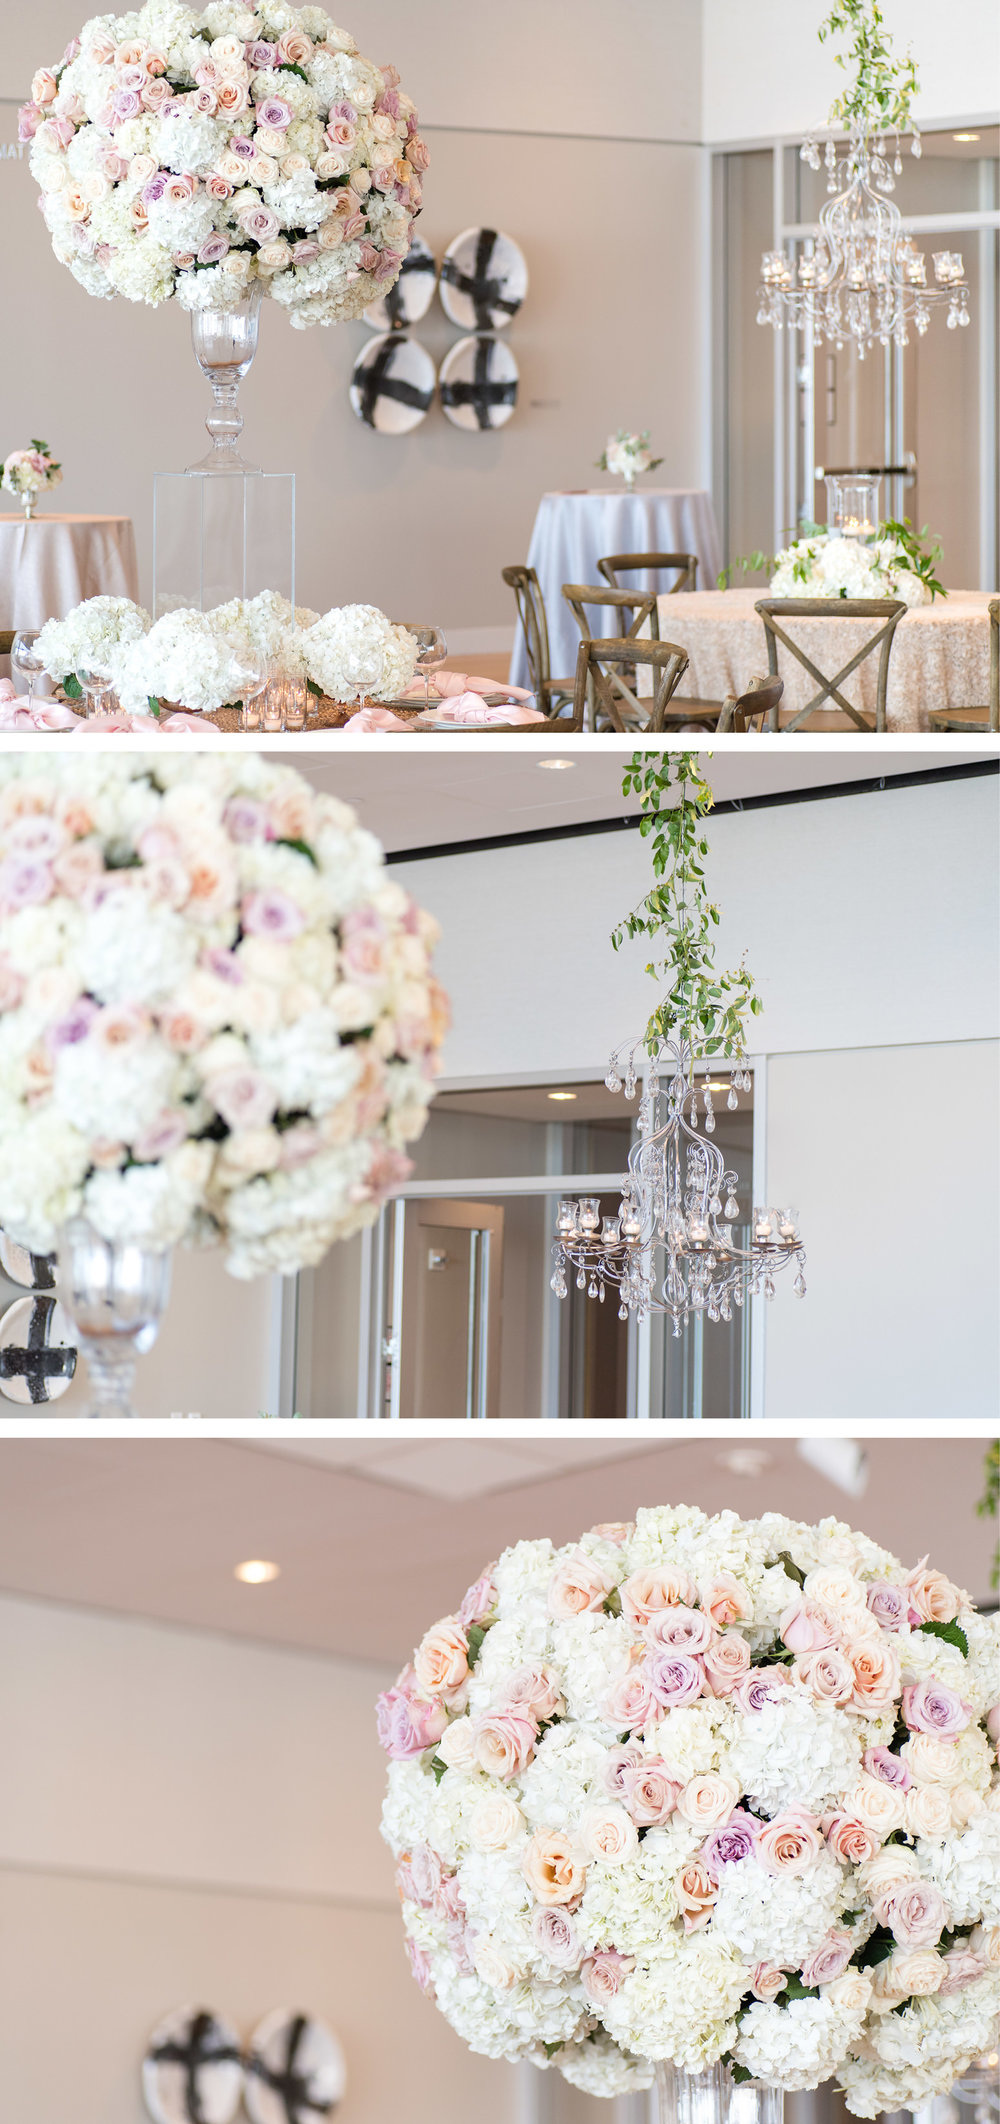 The-Knot-Pro-Charlotte-Mixer-Charlotte-Wedding-Professionals-Wedding-Stationer8.jpg